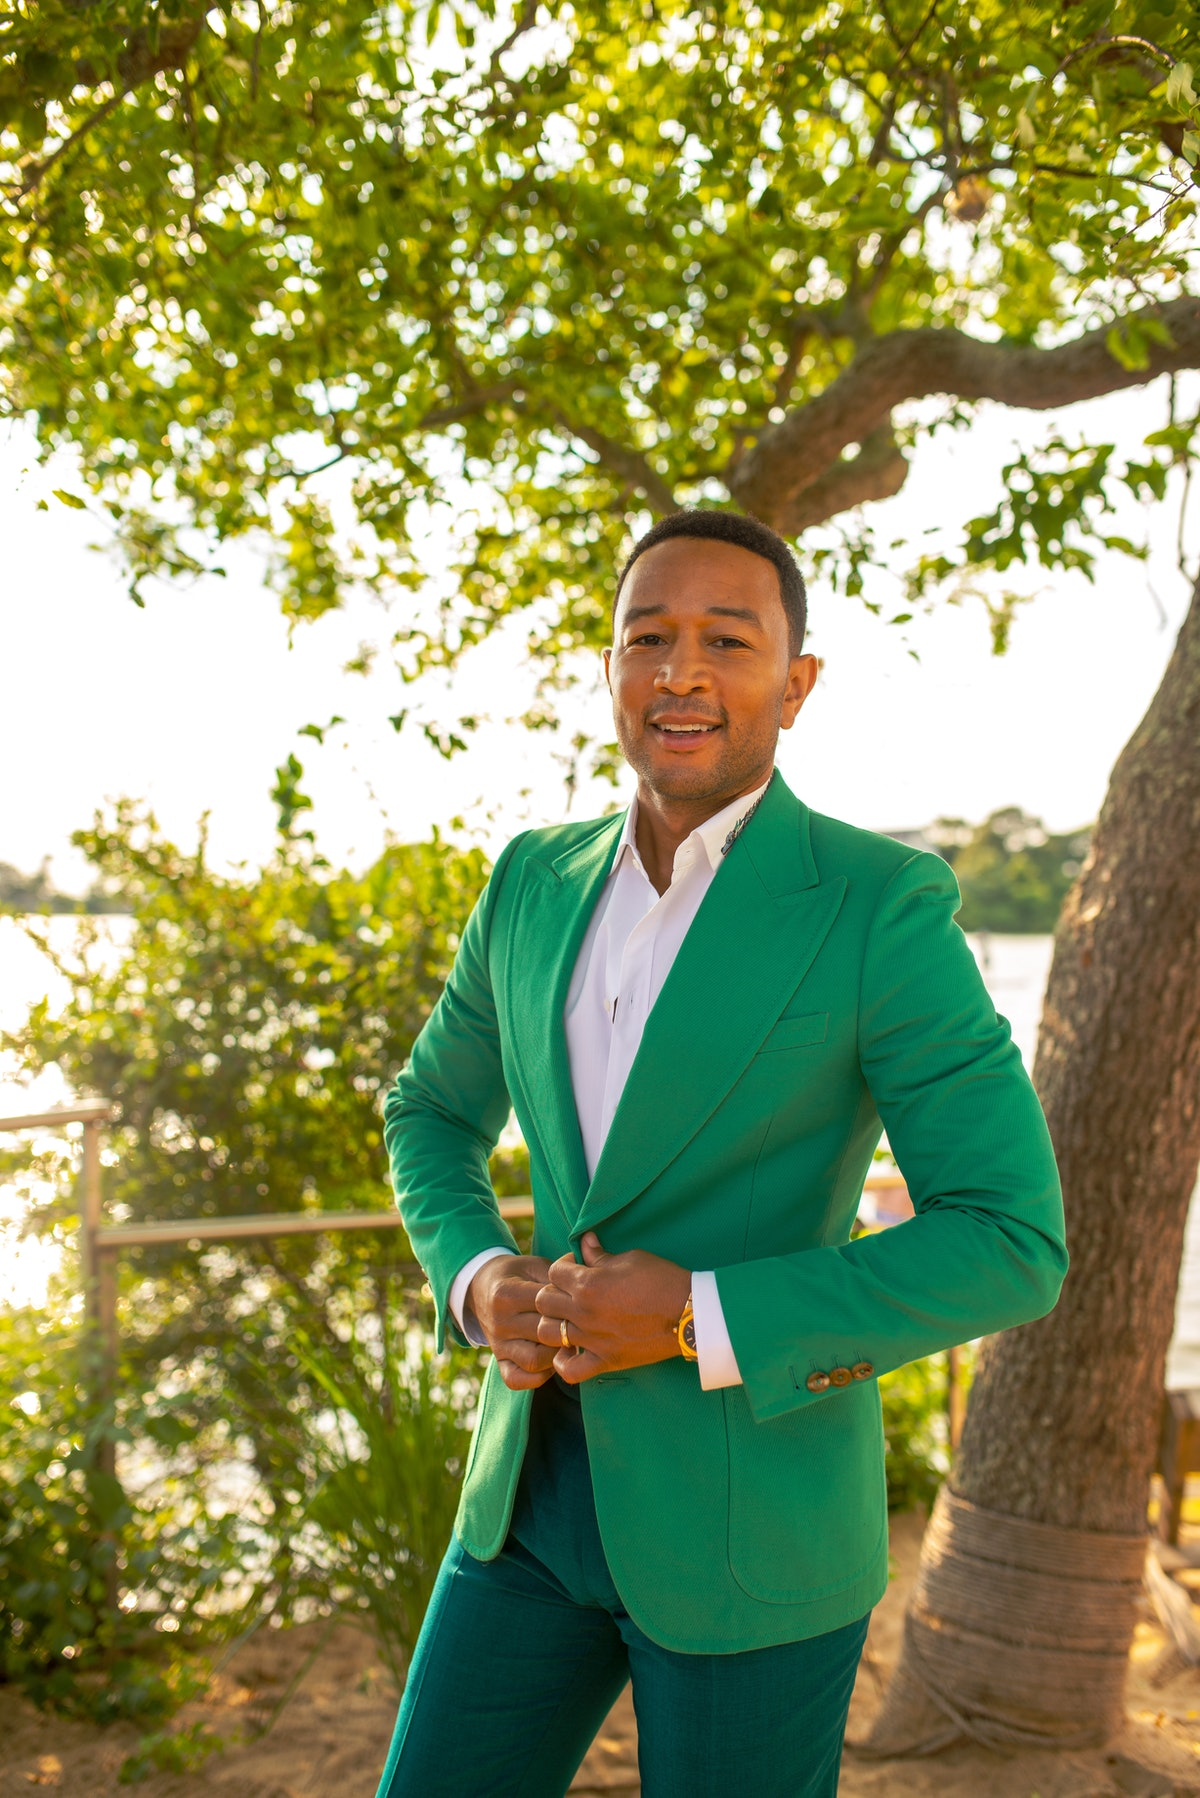 LVE Wines presents: Performance by Co-founder John Legend at The Surf Lodge